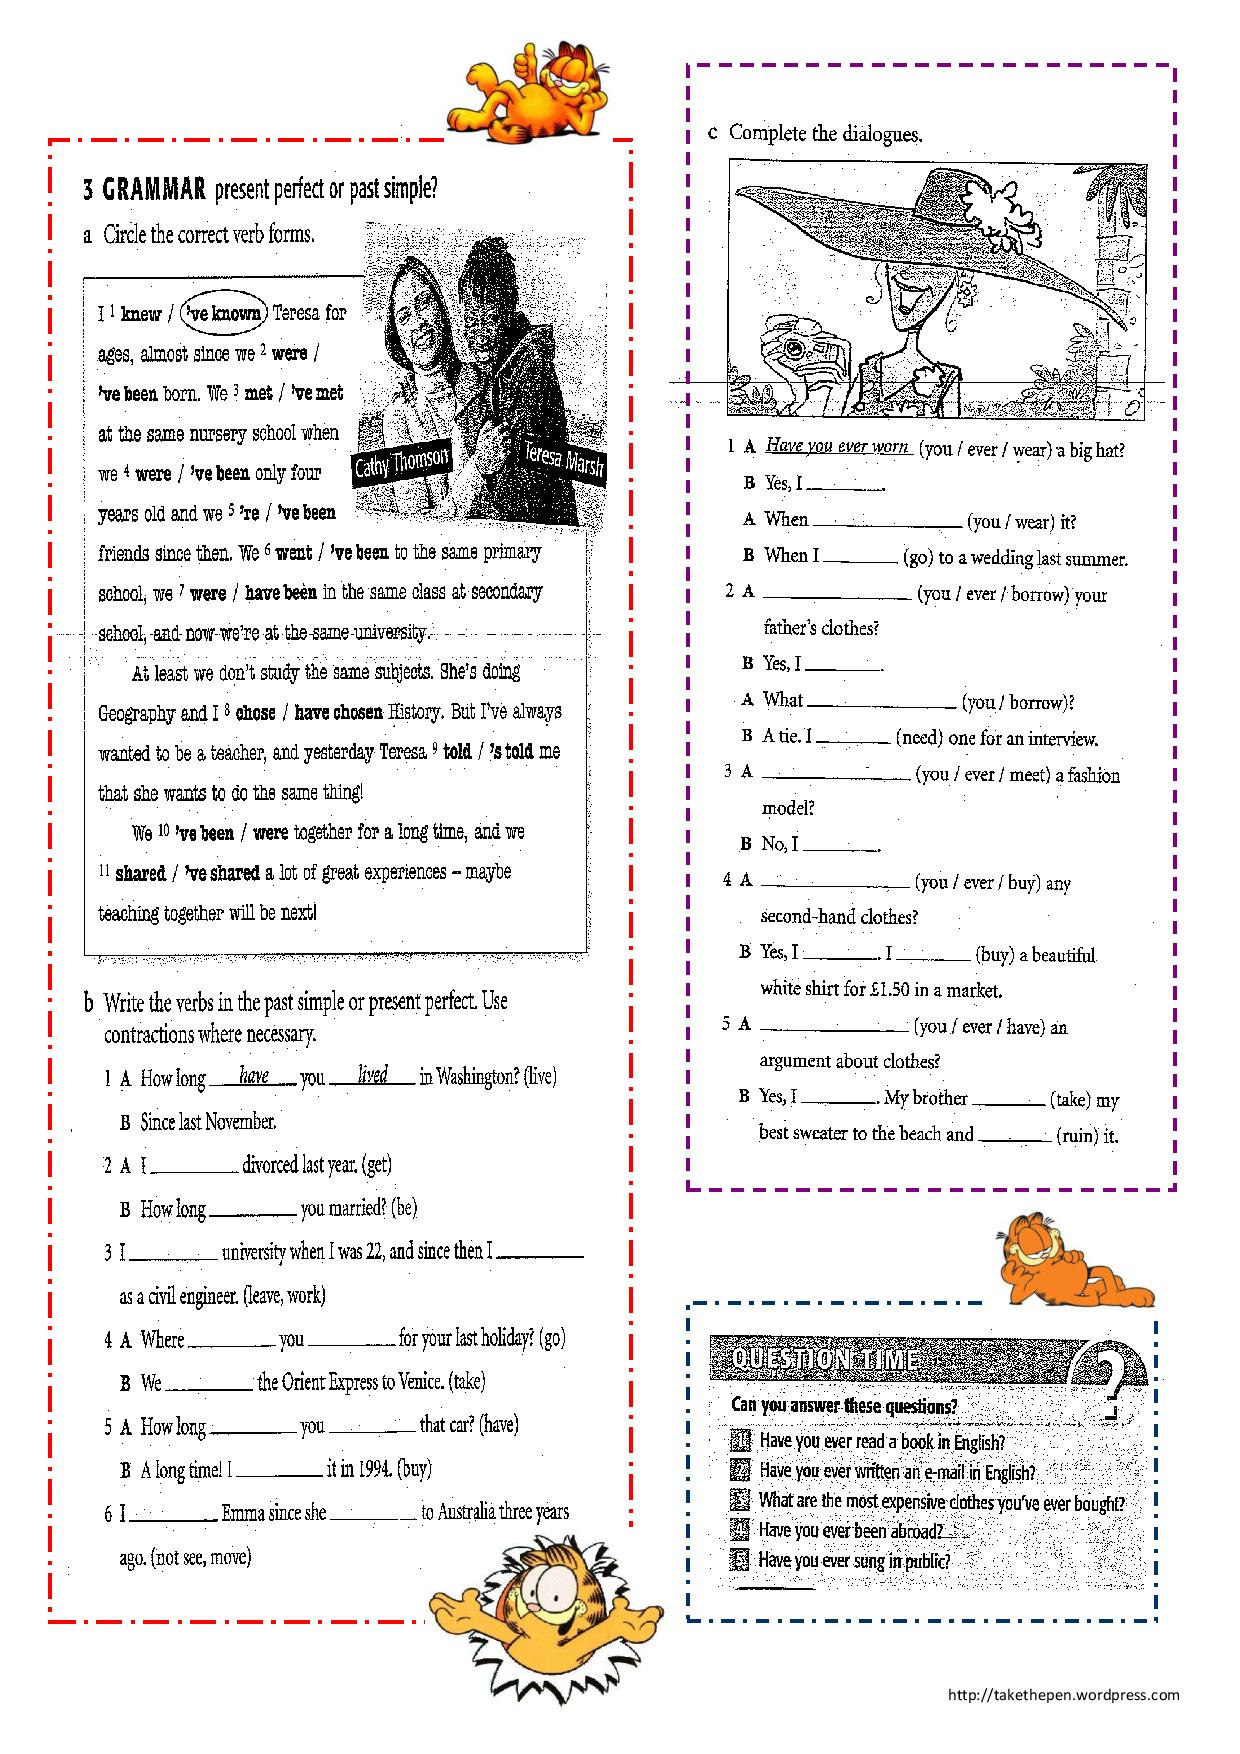 Present Perfect Worksheet Free Worksheets Library | Download and ...